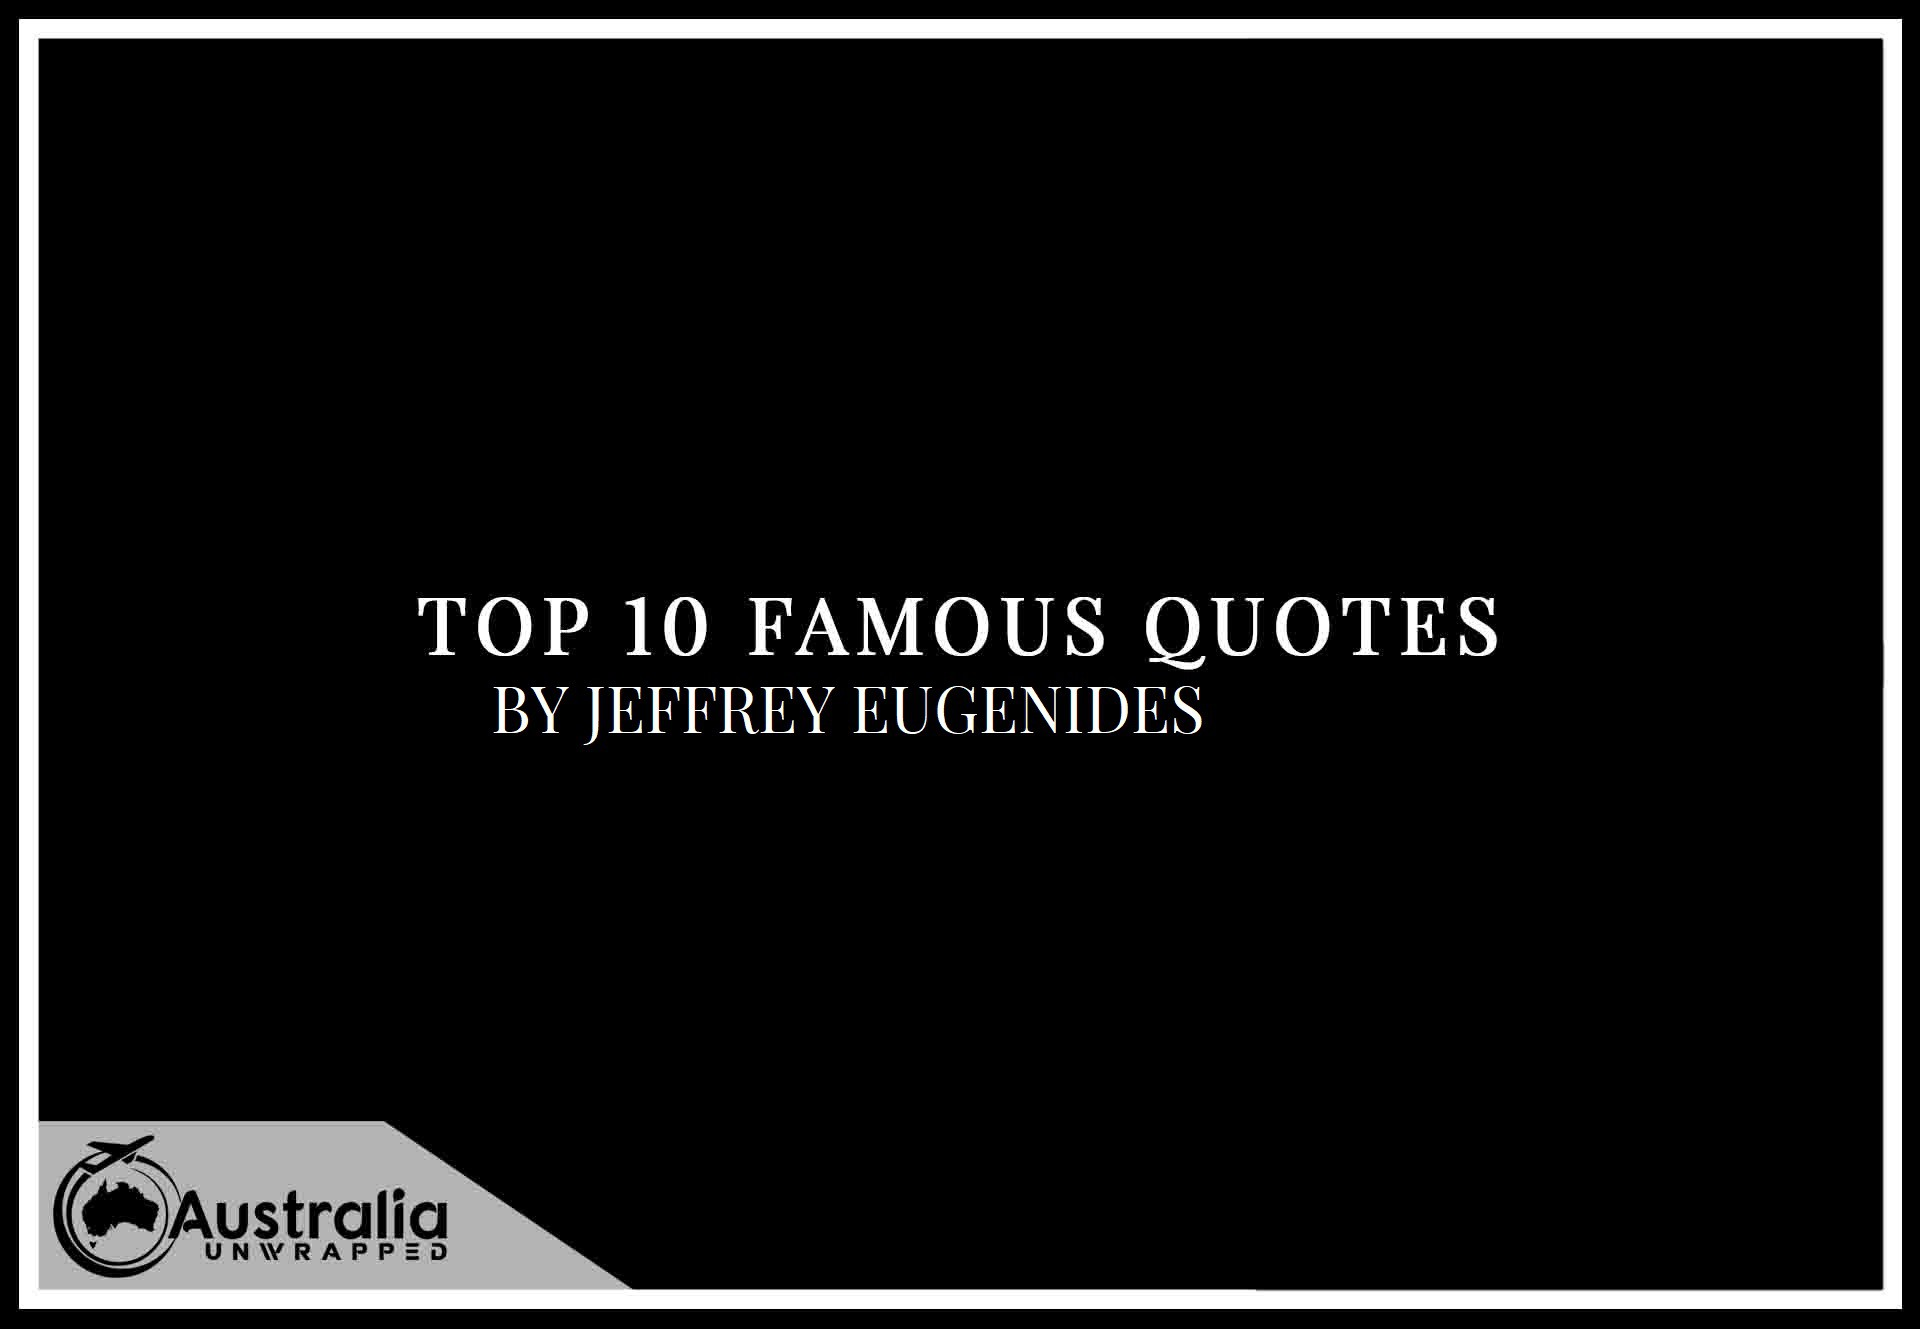 Top 10 Famous Quotes by Author Jeffrey Eugenides